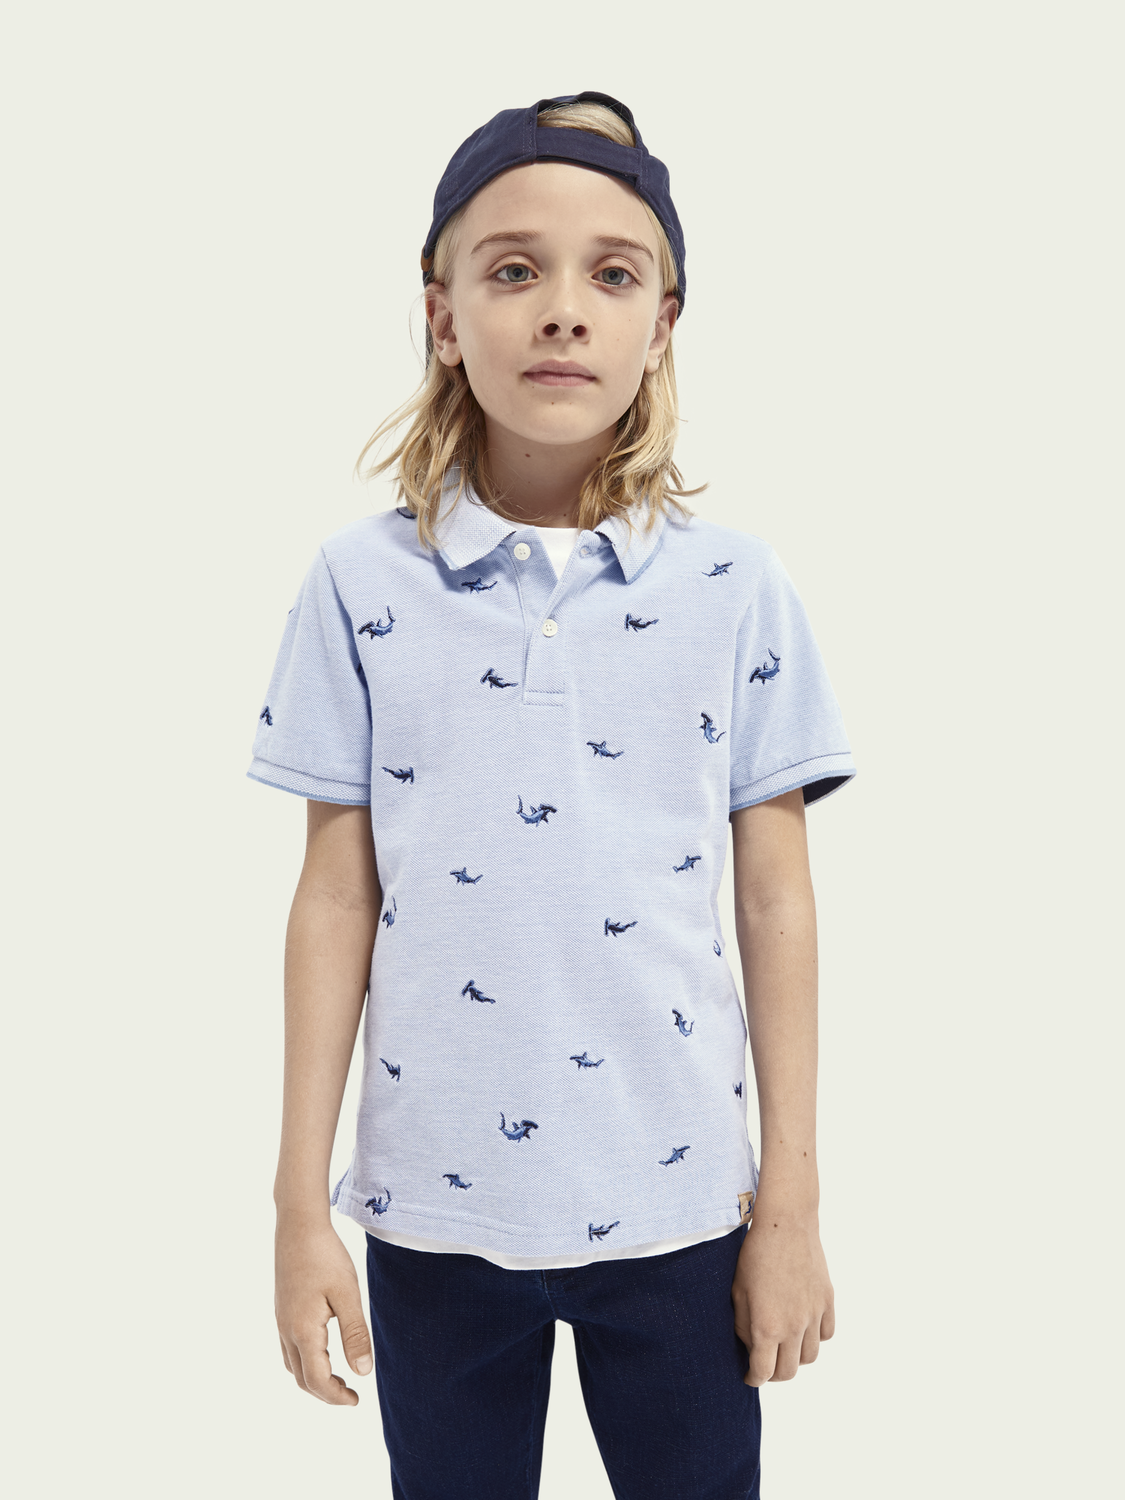 Kids Short-sleeved embroidered polo